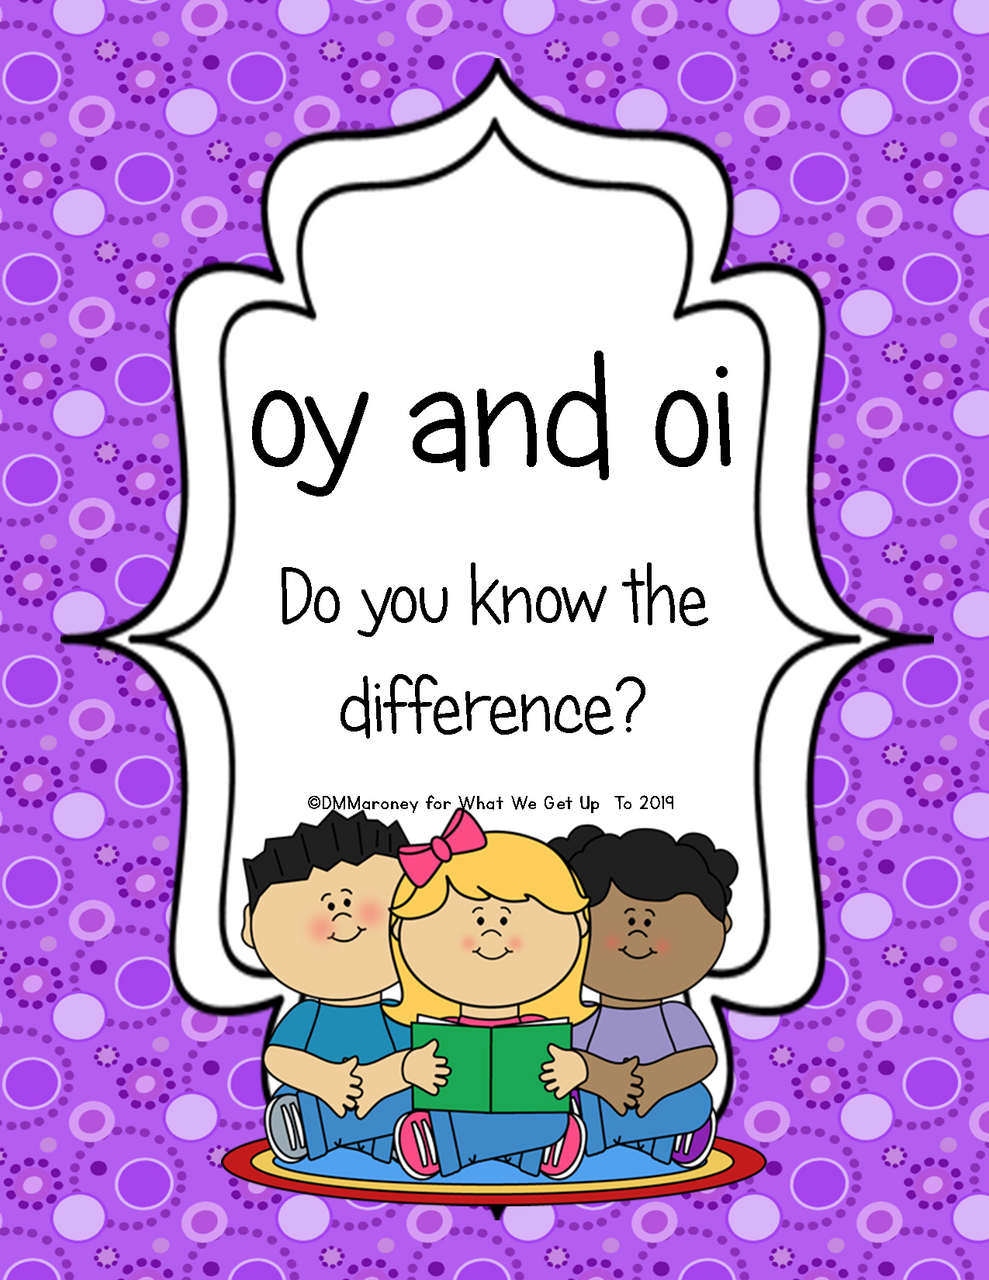 oy and oi: Do You Know the Difference